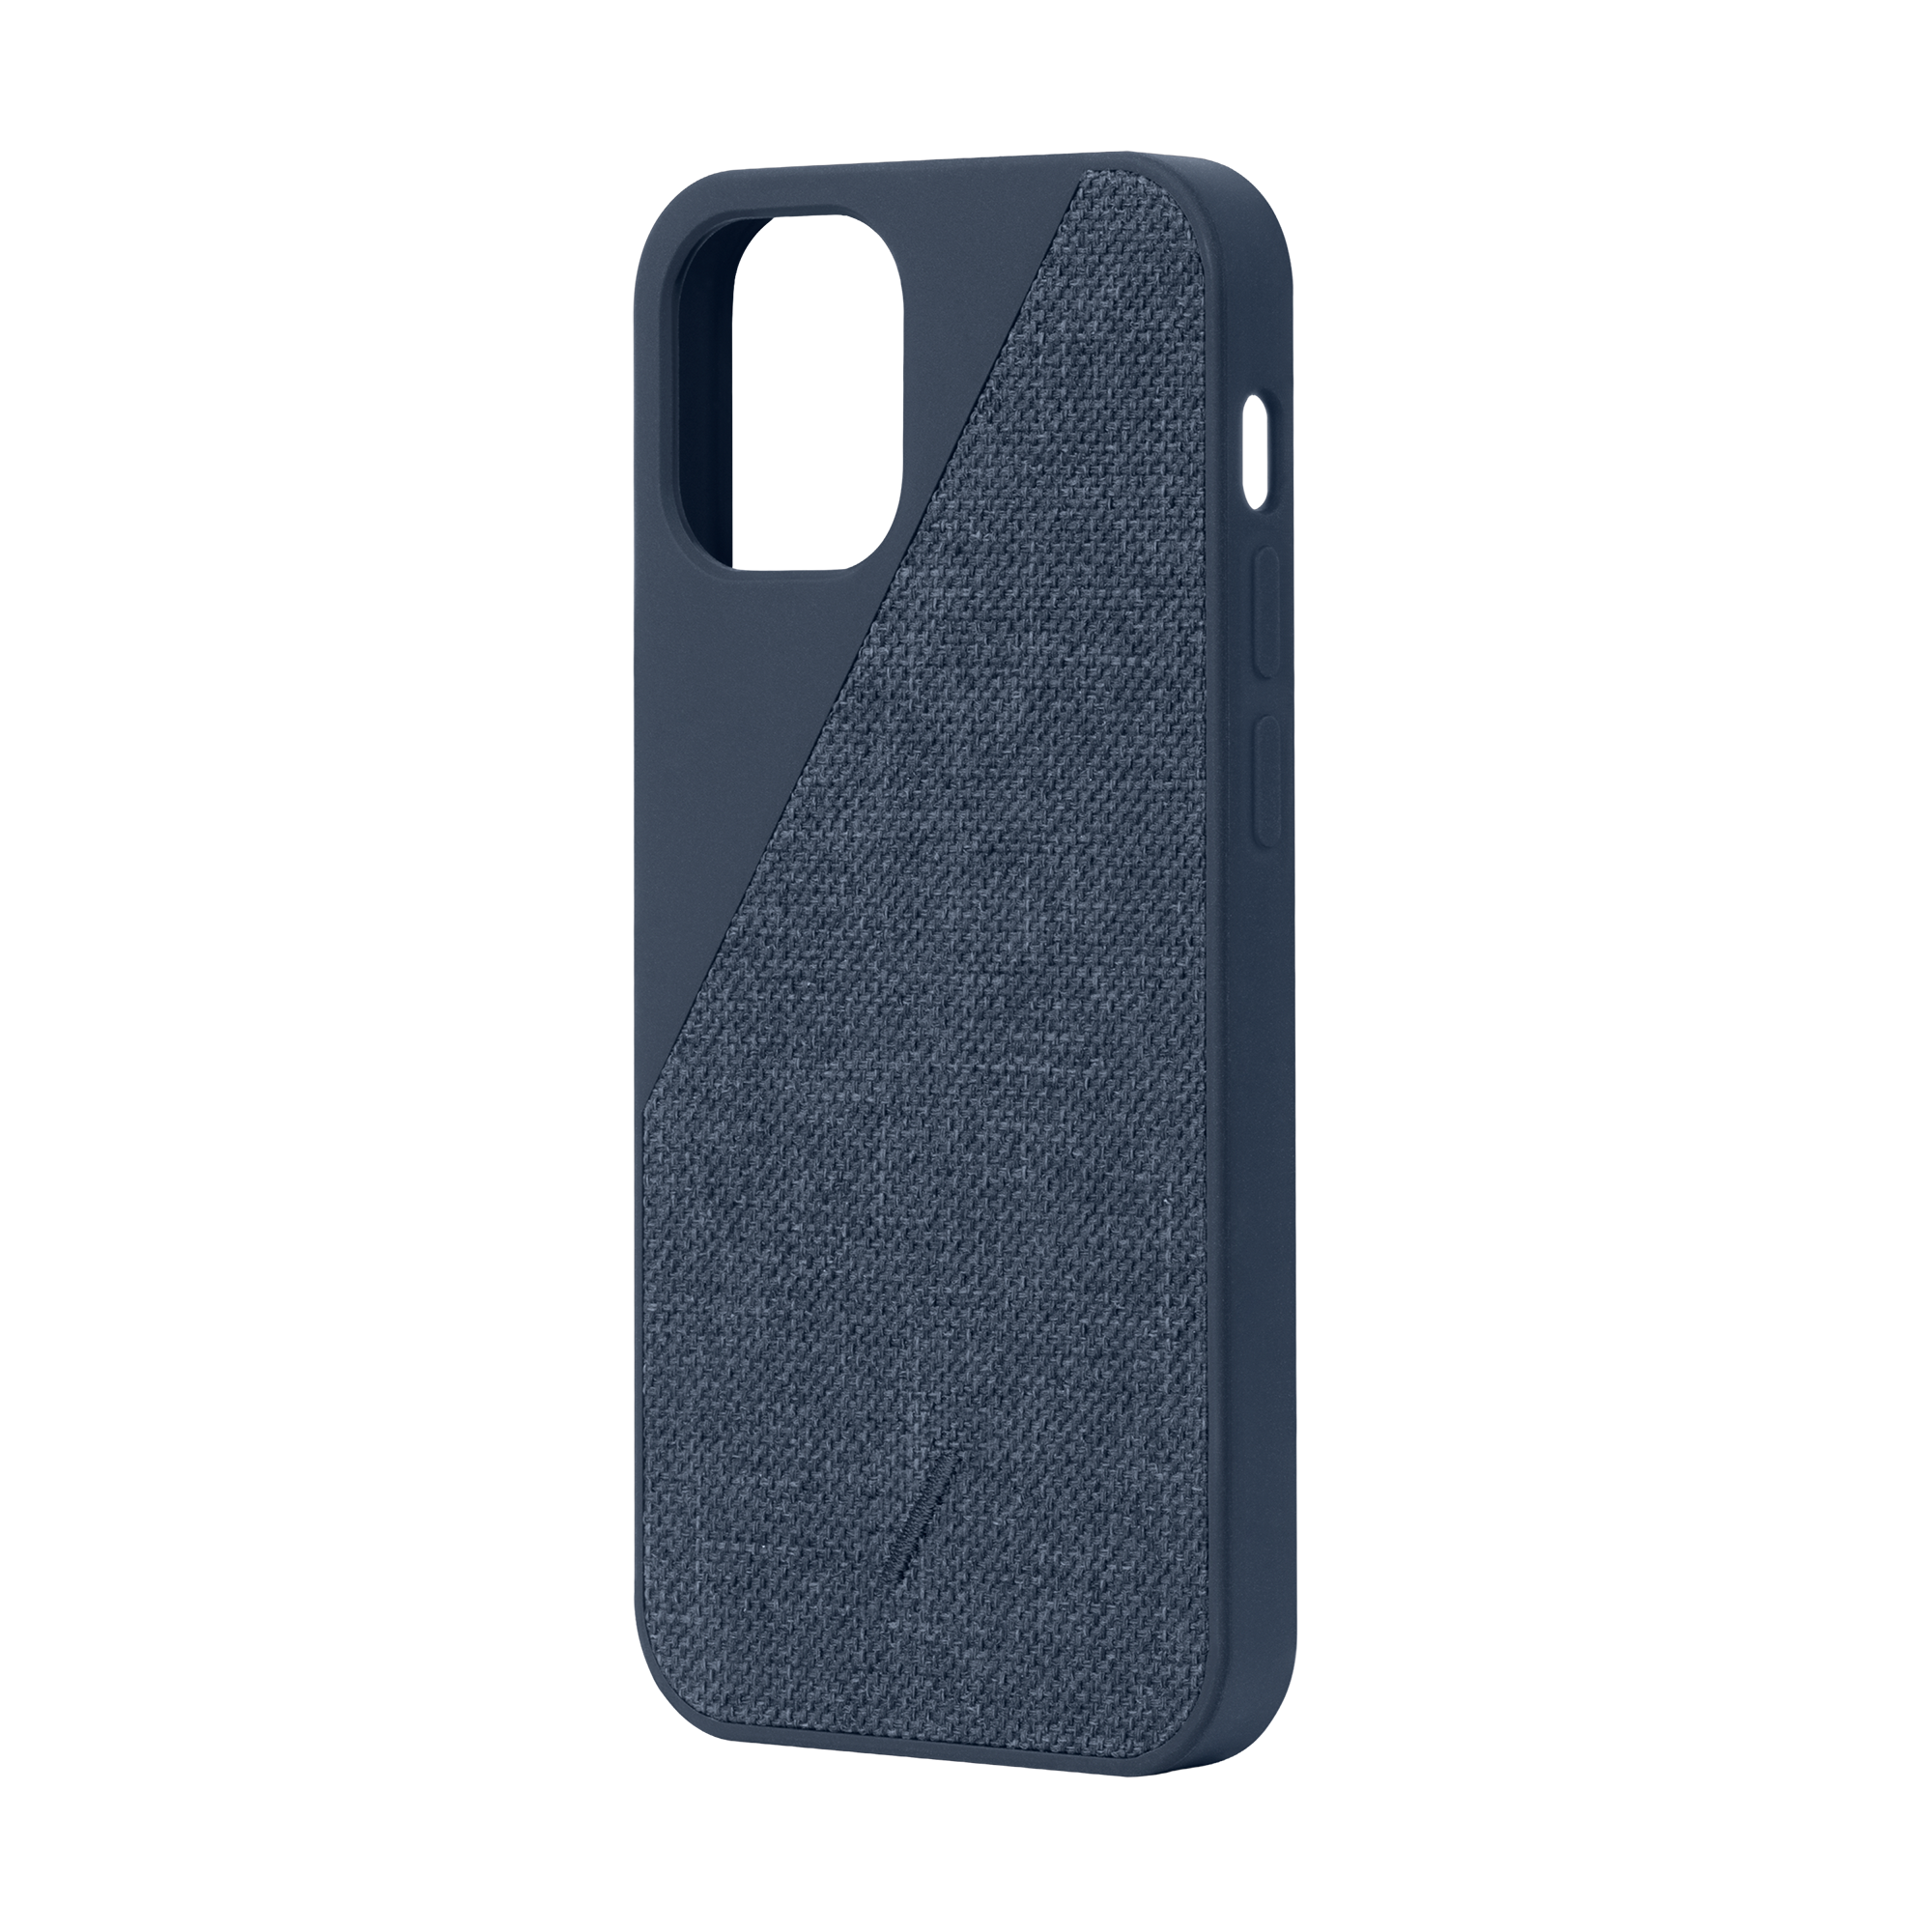 34316682887307,Clic Canvas (iPhone 12) - Indigo